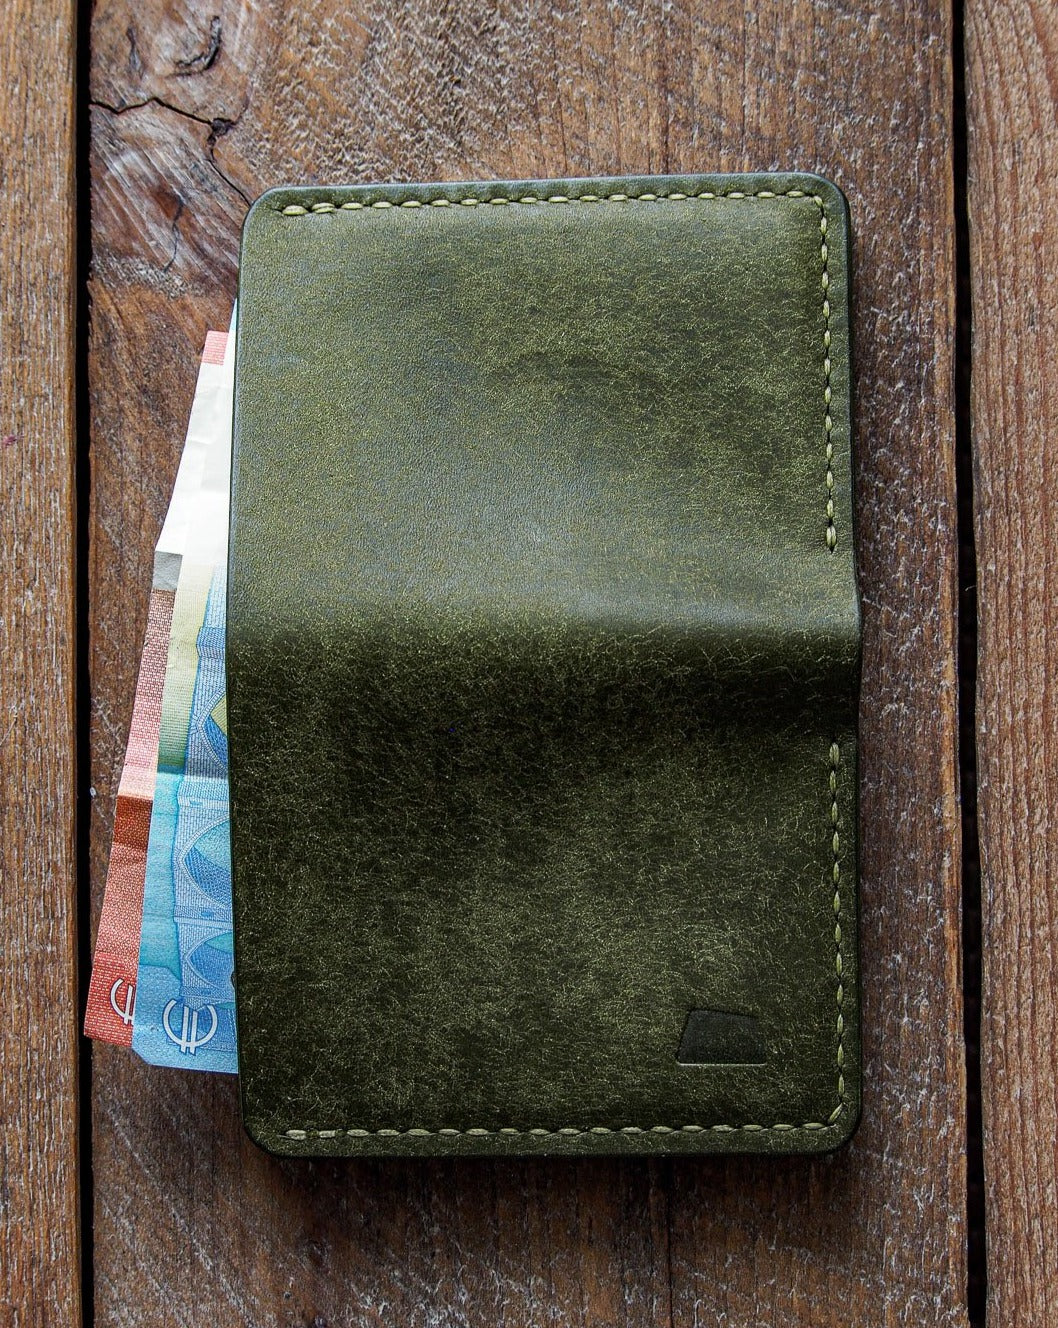 Luava handmade leather wallet NERO pine card holder cardholder handcrafted pueblo olive back in use